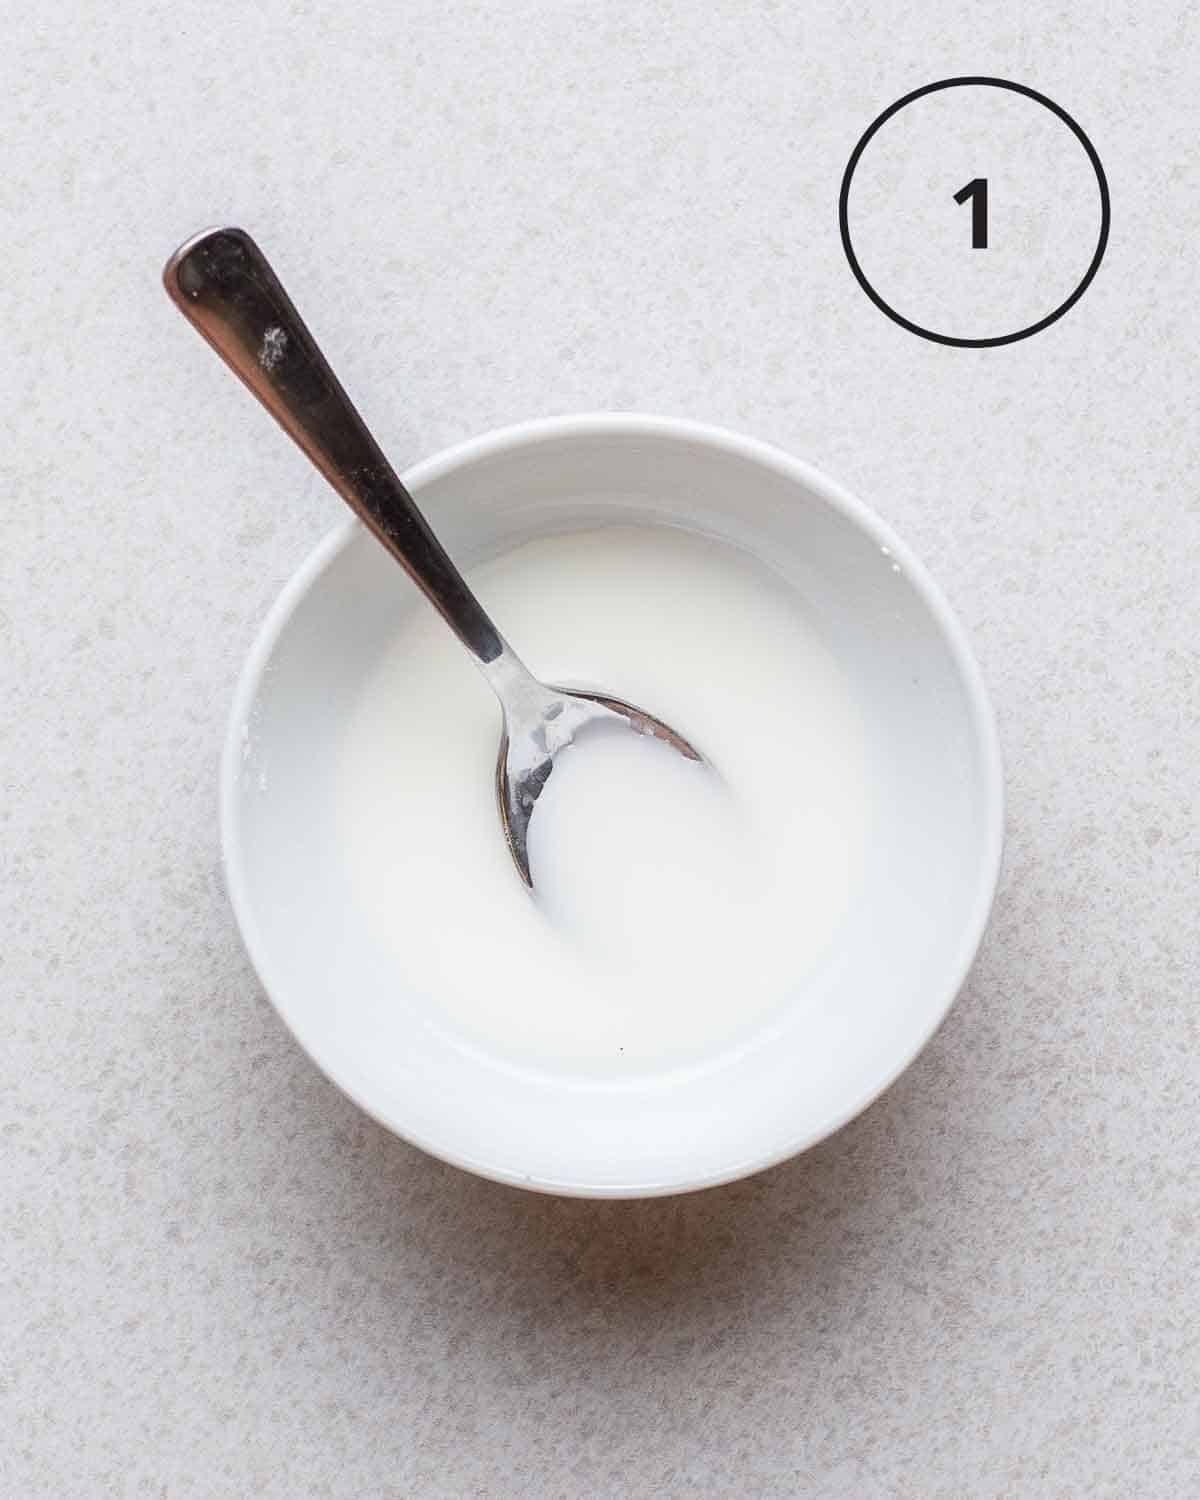 cornstarch slurry in a white bowl with a spoon on a grey background.